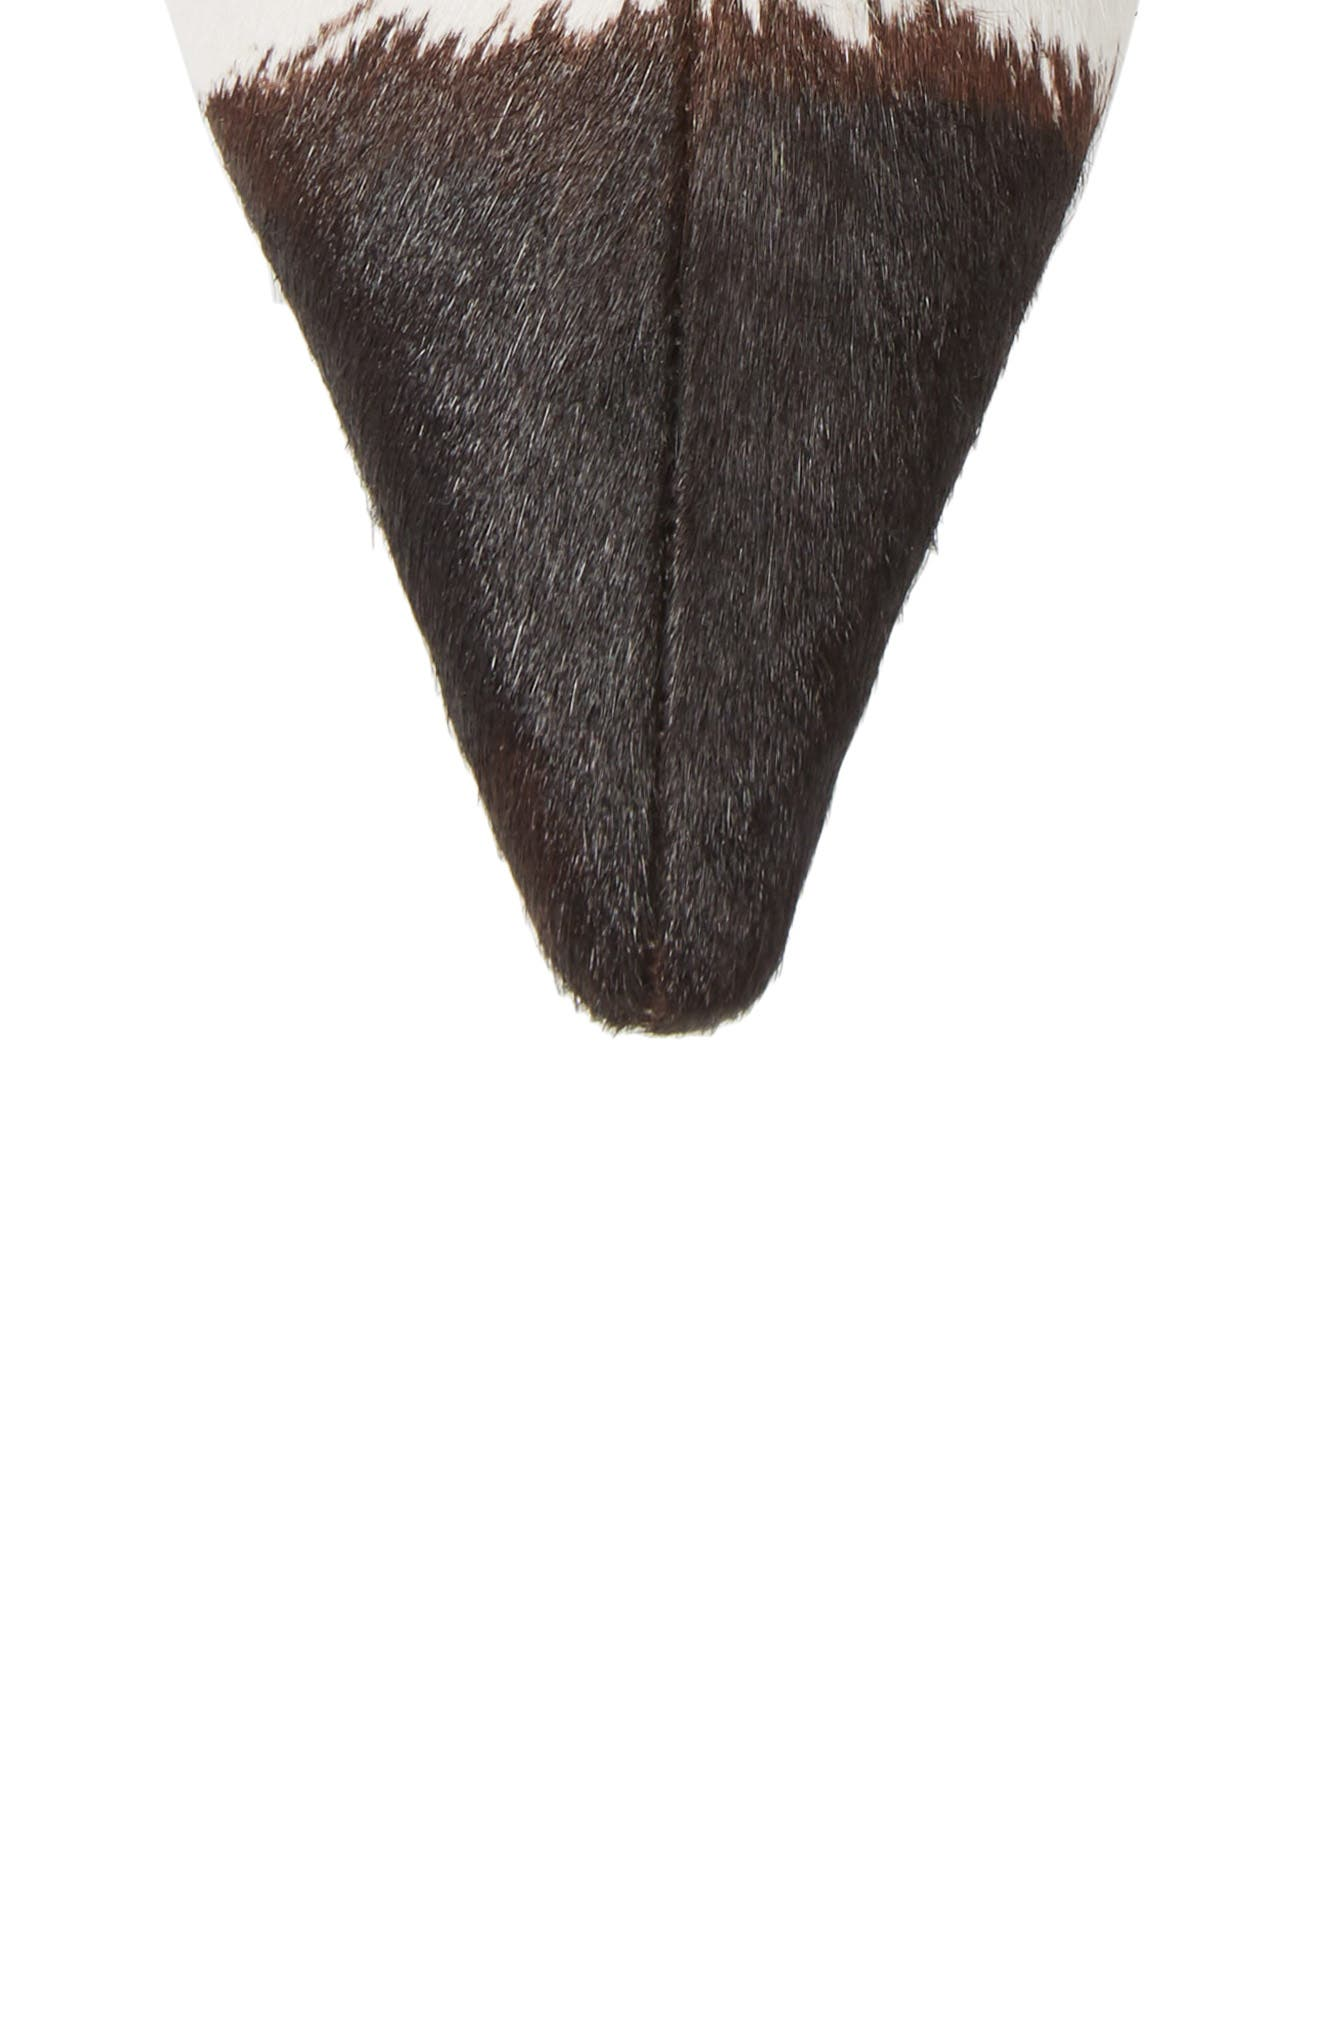 JEFFREY CAMPBELL,                             Barbell-F Genuine Calf Hair Bootie,                             Alternate thumbnail 5, color,                             001